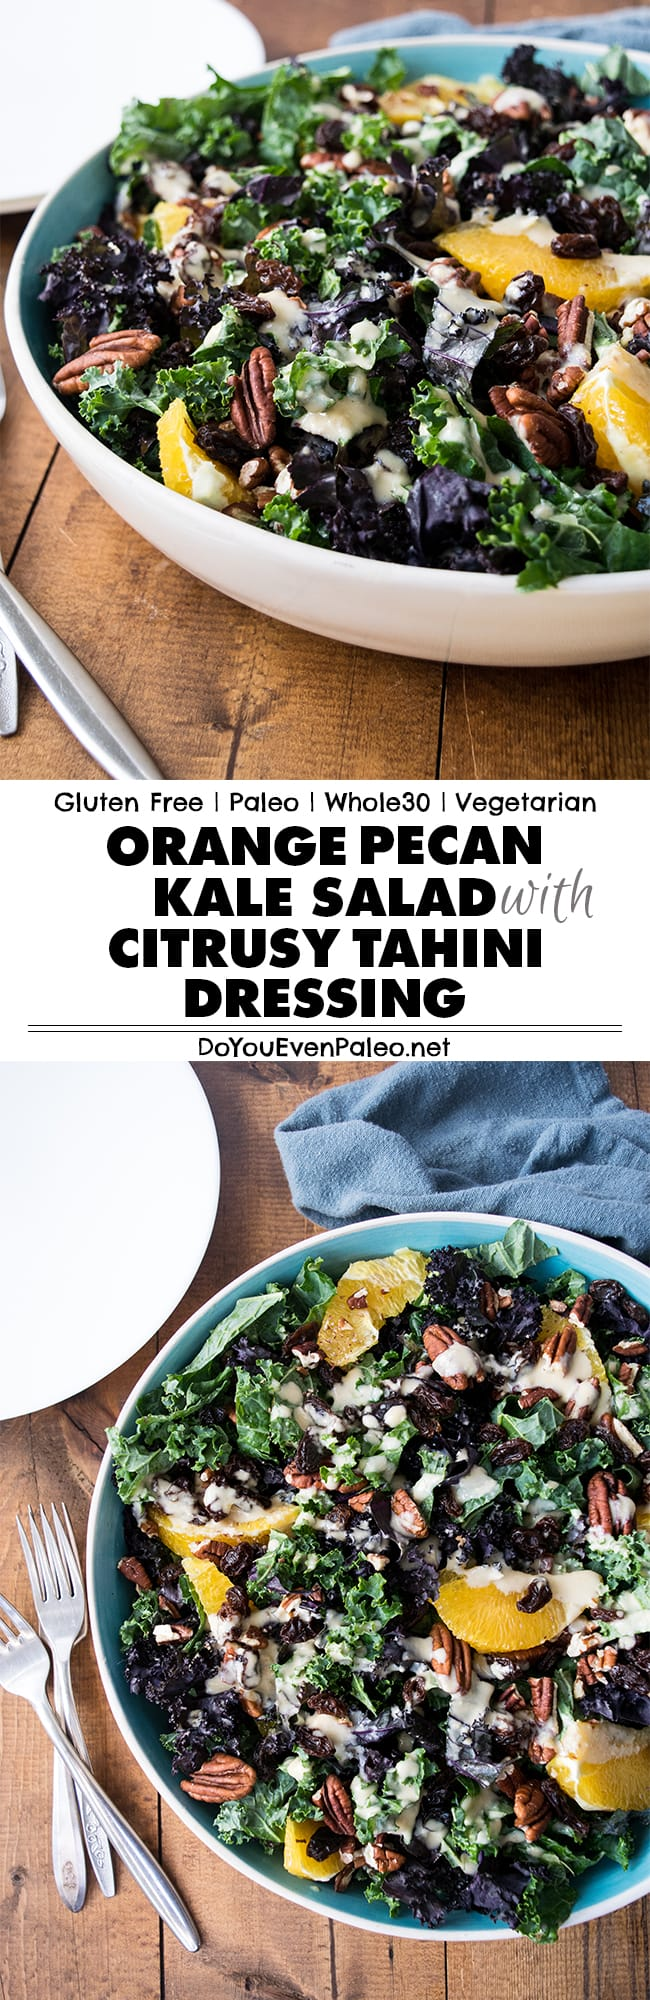 Whole30 Orange Pecan Kale Salad with Citrus Tahini Dressing